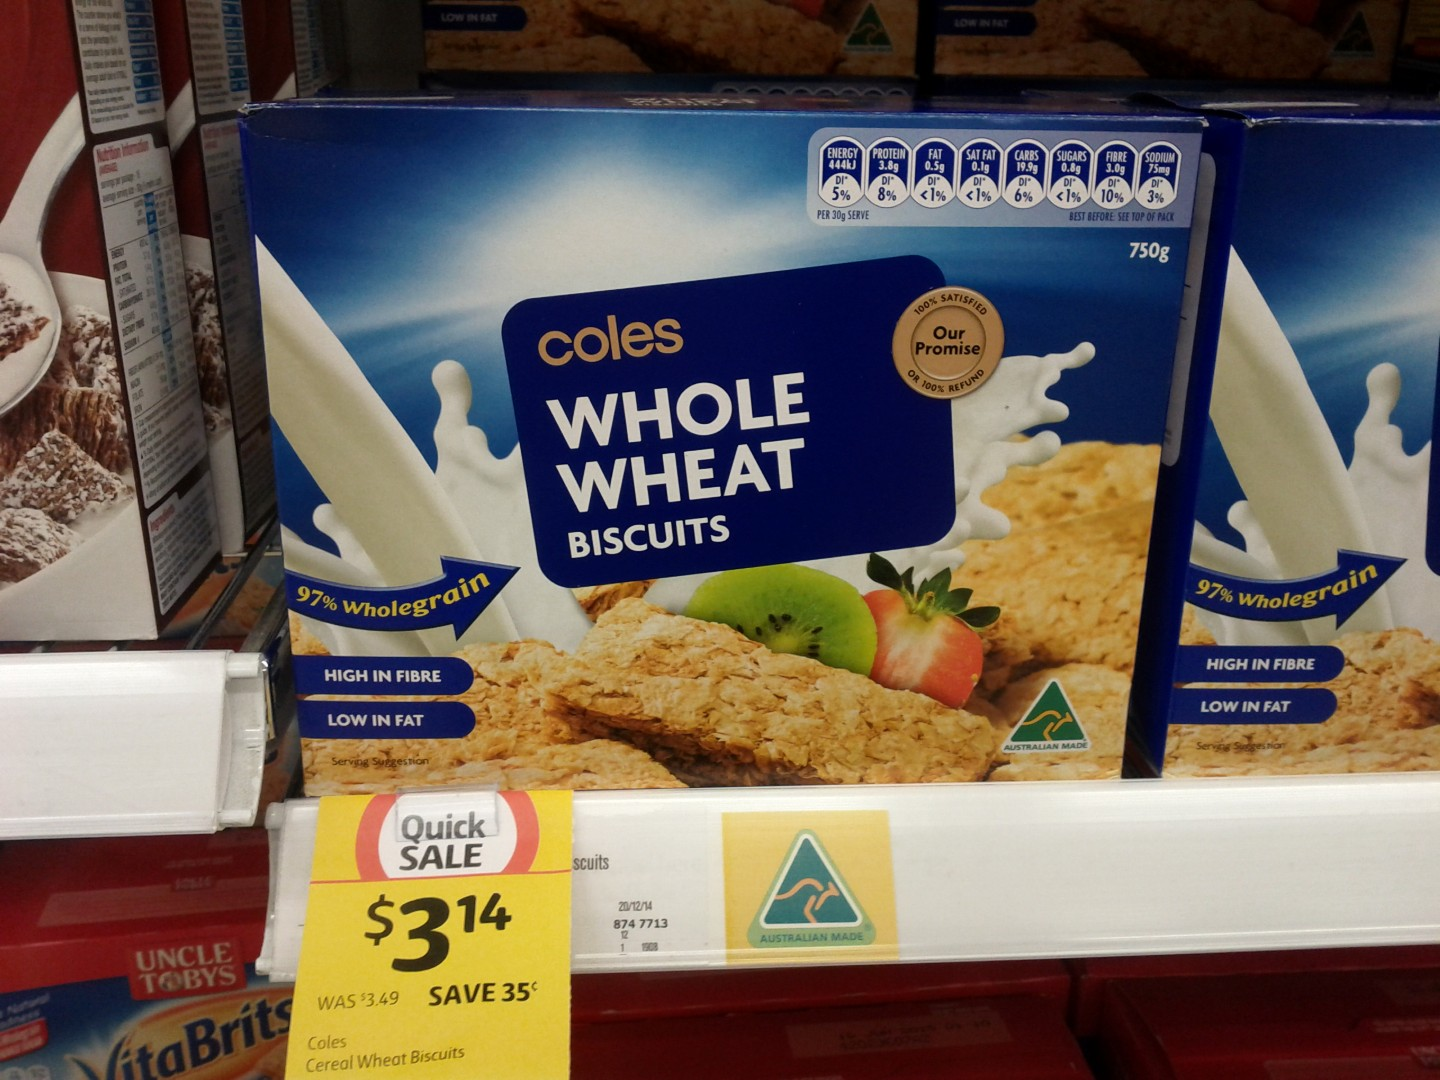 Coles 750g Whole Wheat Biscuits